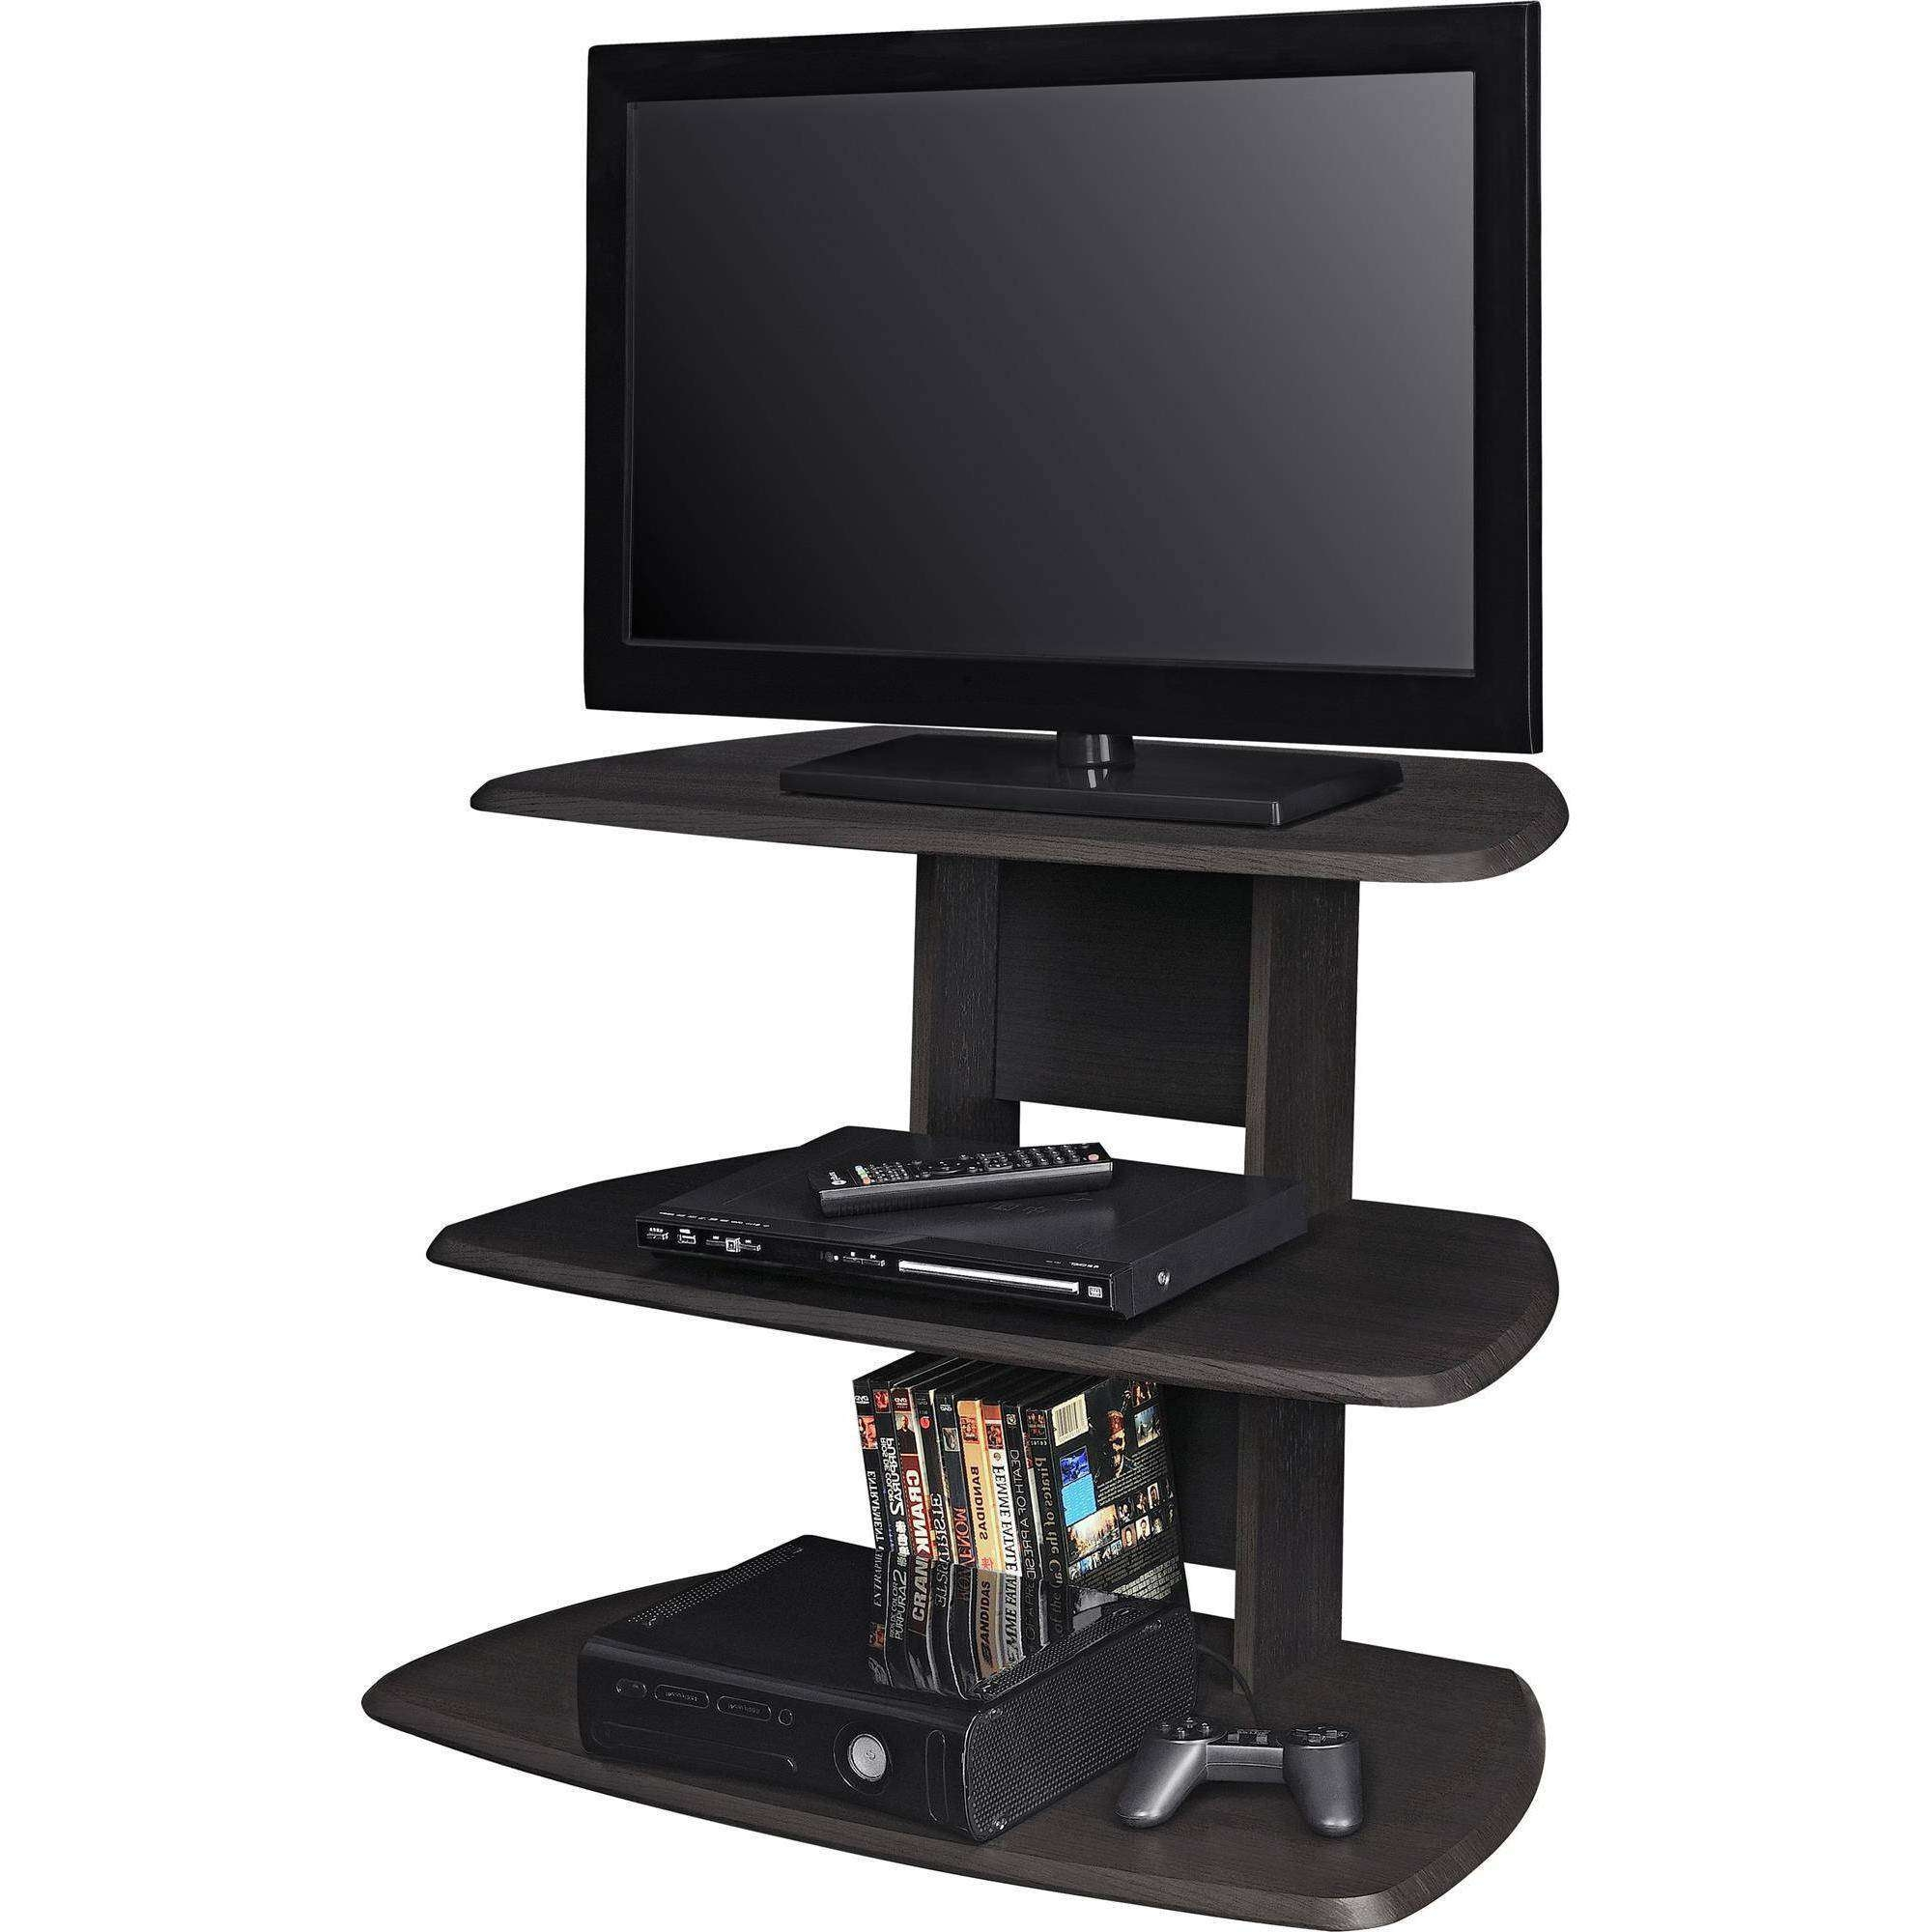 "Ameriwood Home Galaxy Ii Tv Stand For Tvs Up To 32"" Wide, Espresso Inside 32 Inch Tv Stands (View 1 of 15)"